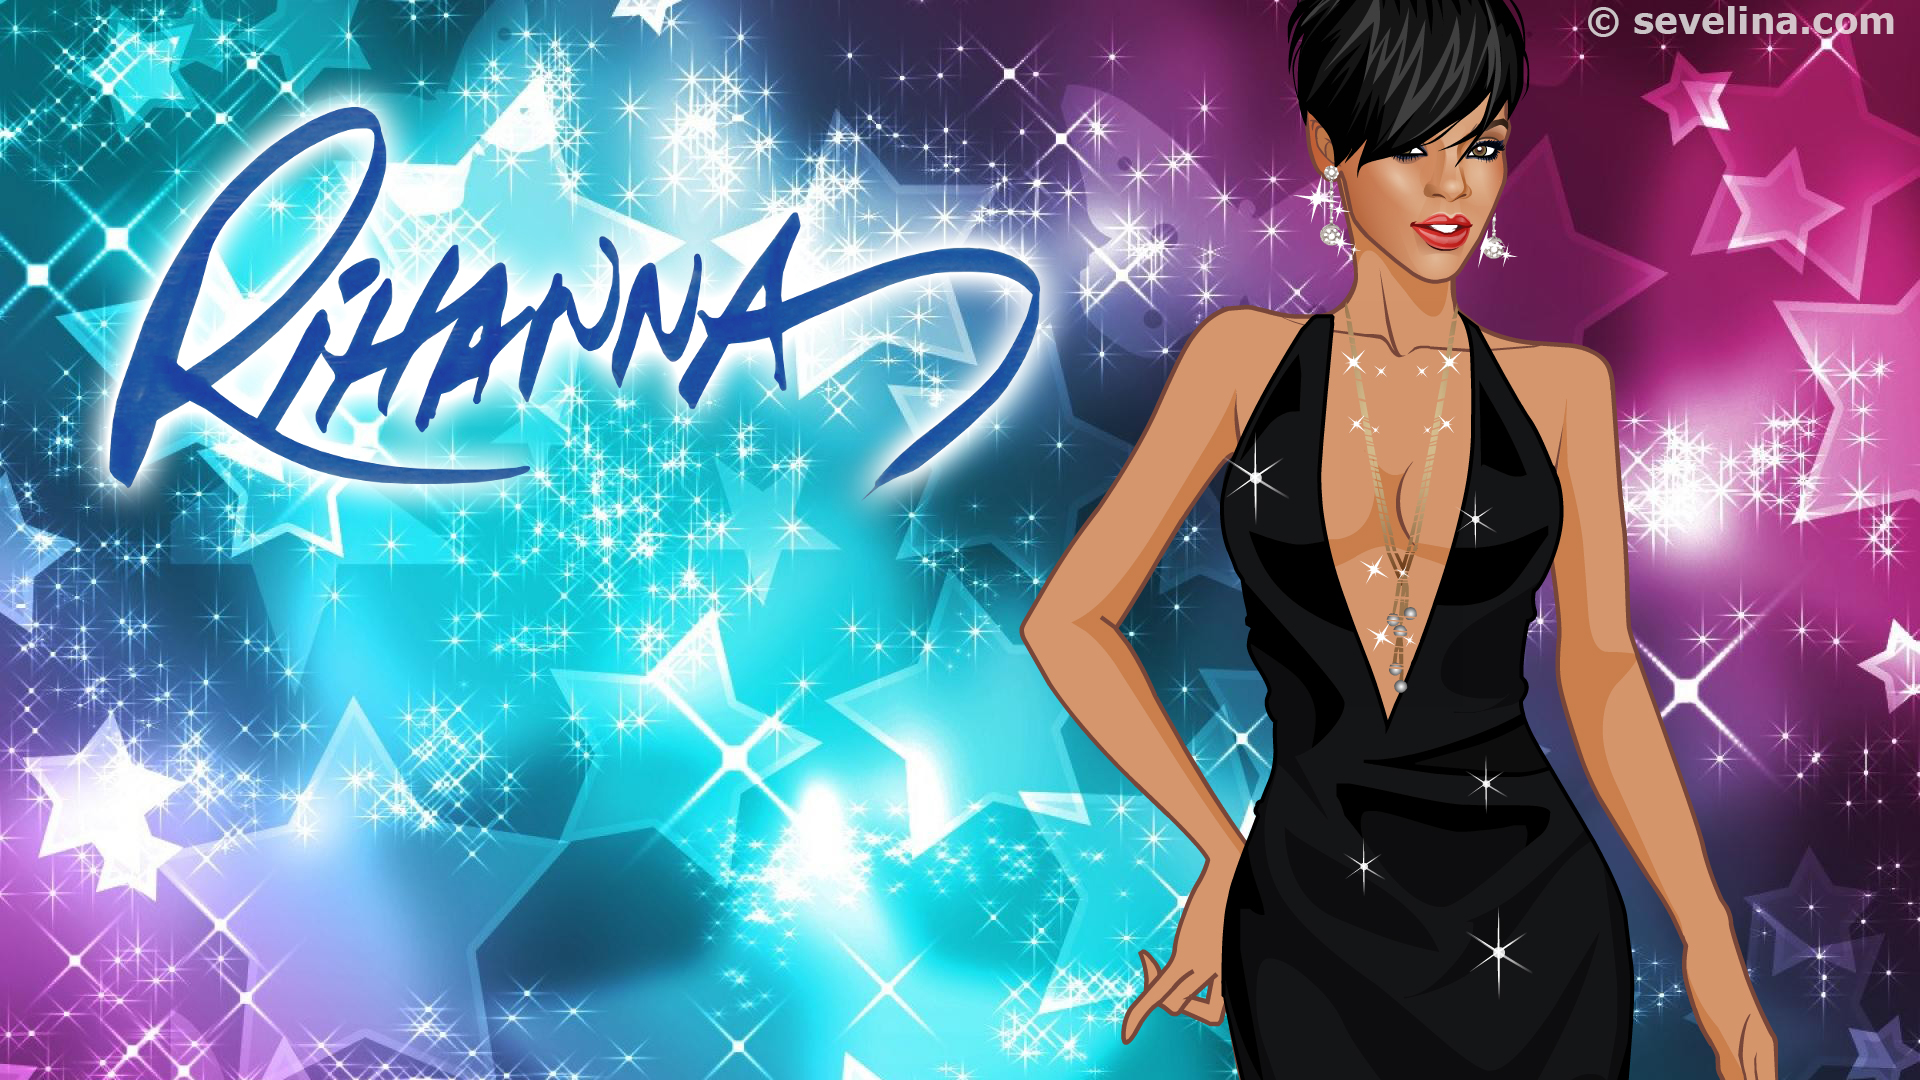 rihanna-wallpapers-2014Full HD